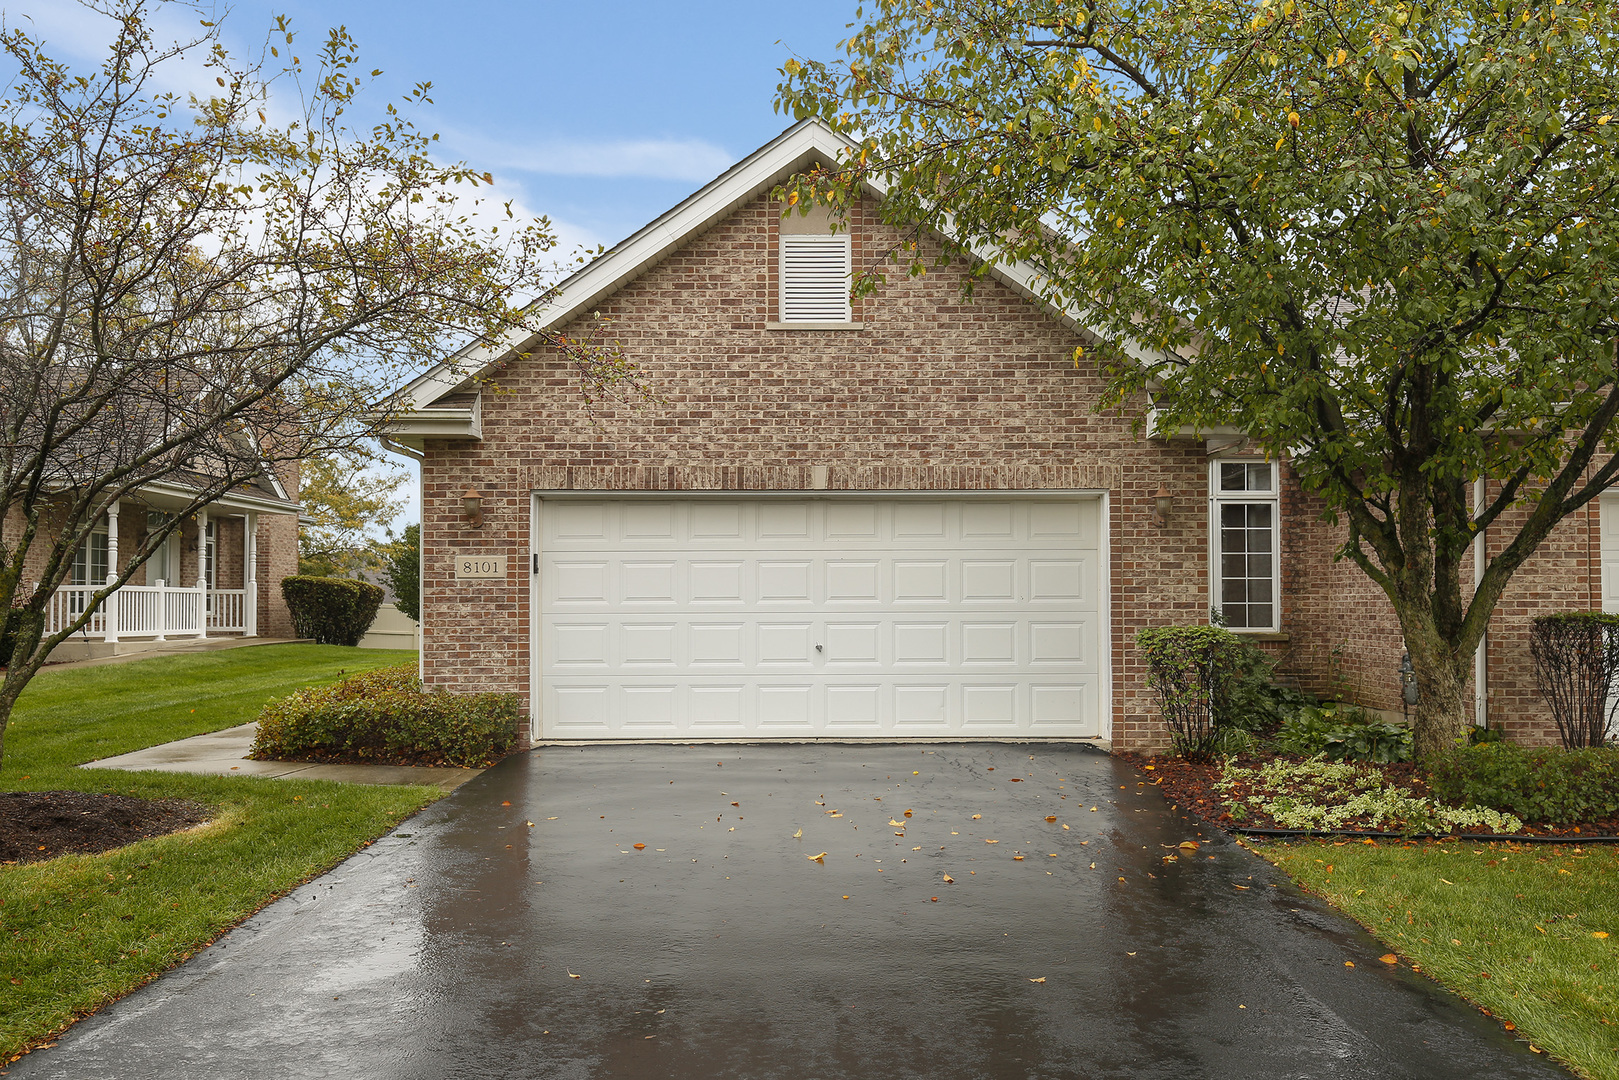 8101 Nielsen Drive, Tinley Park in Cook County, IL 60477 Home for Sale